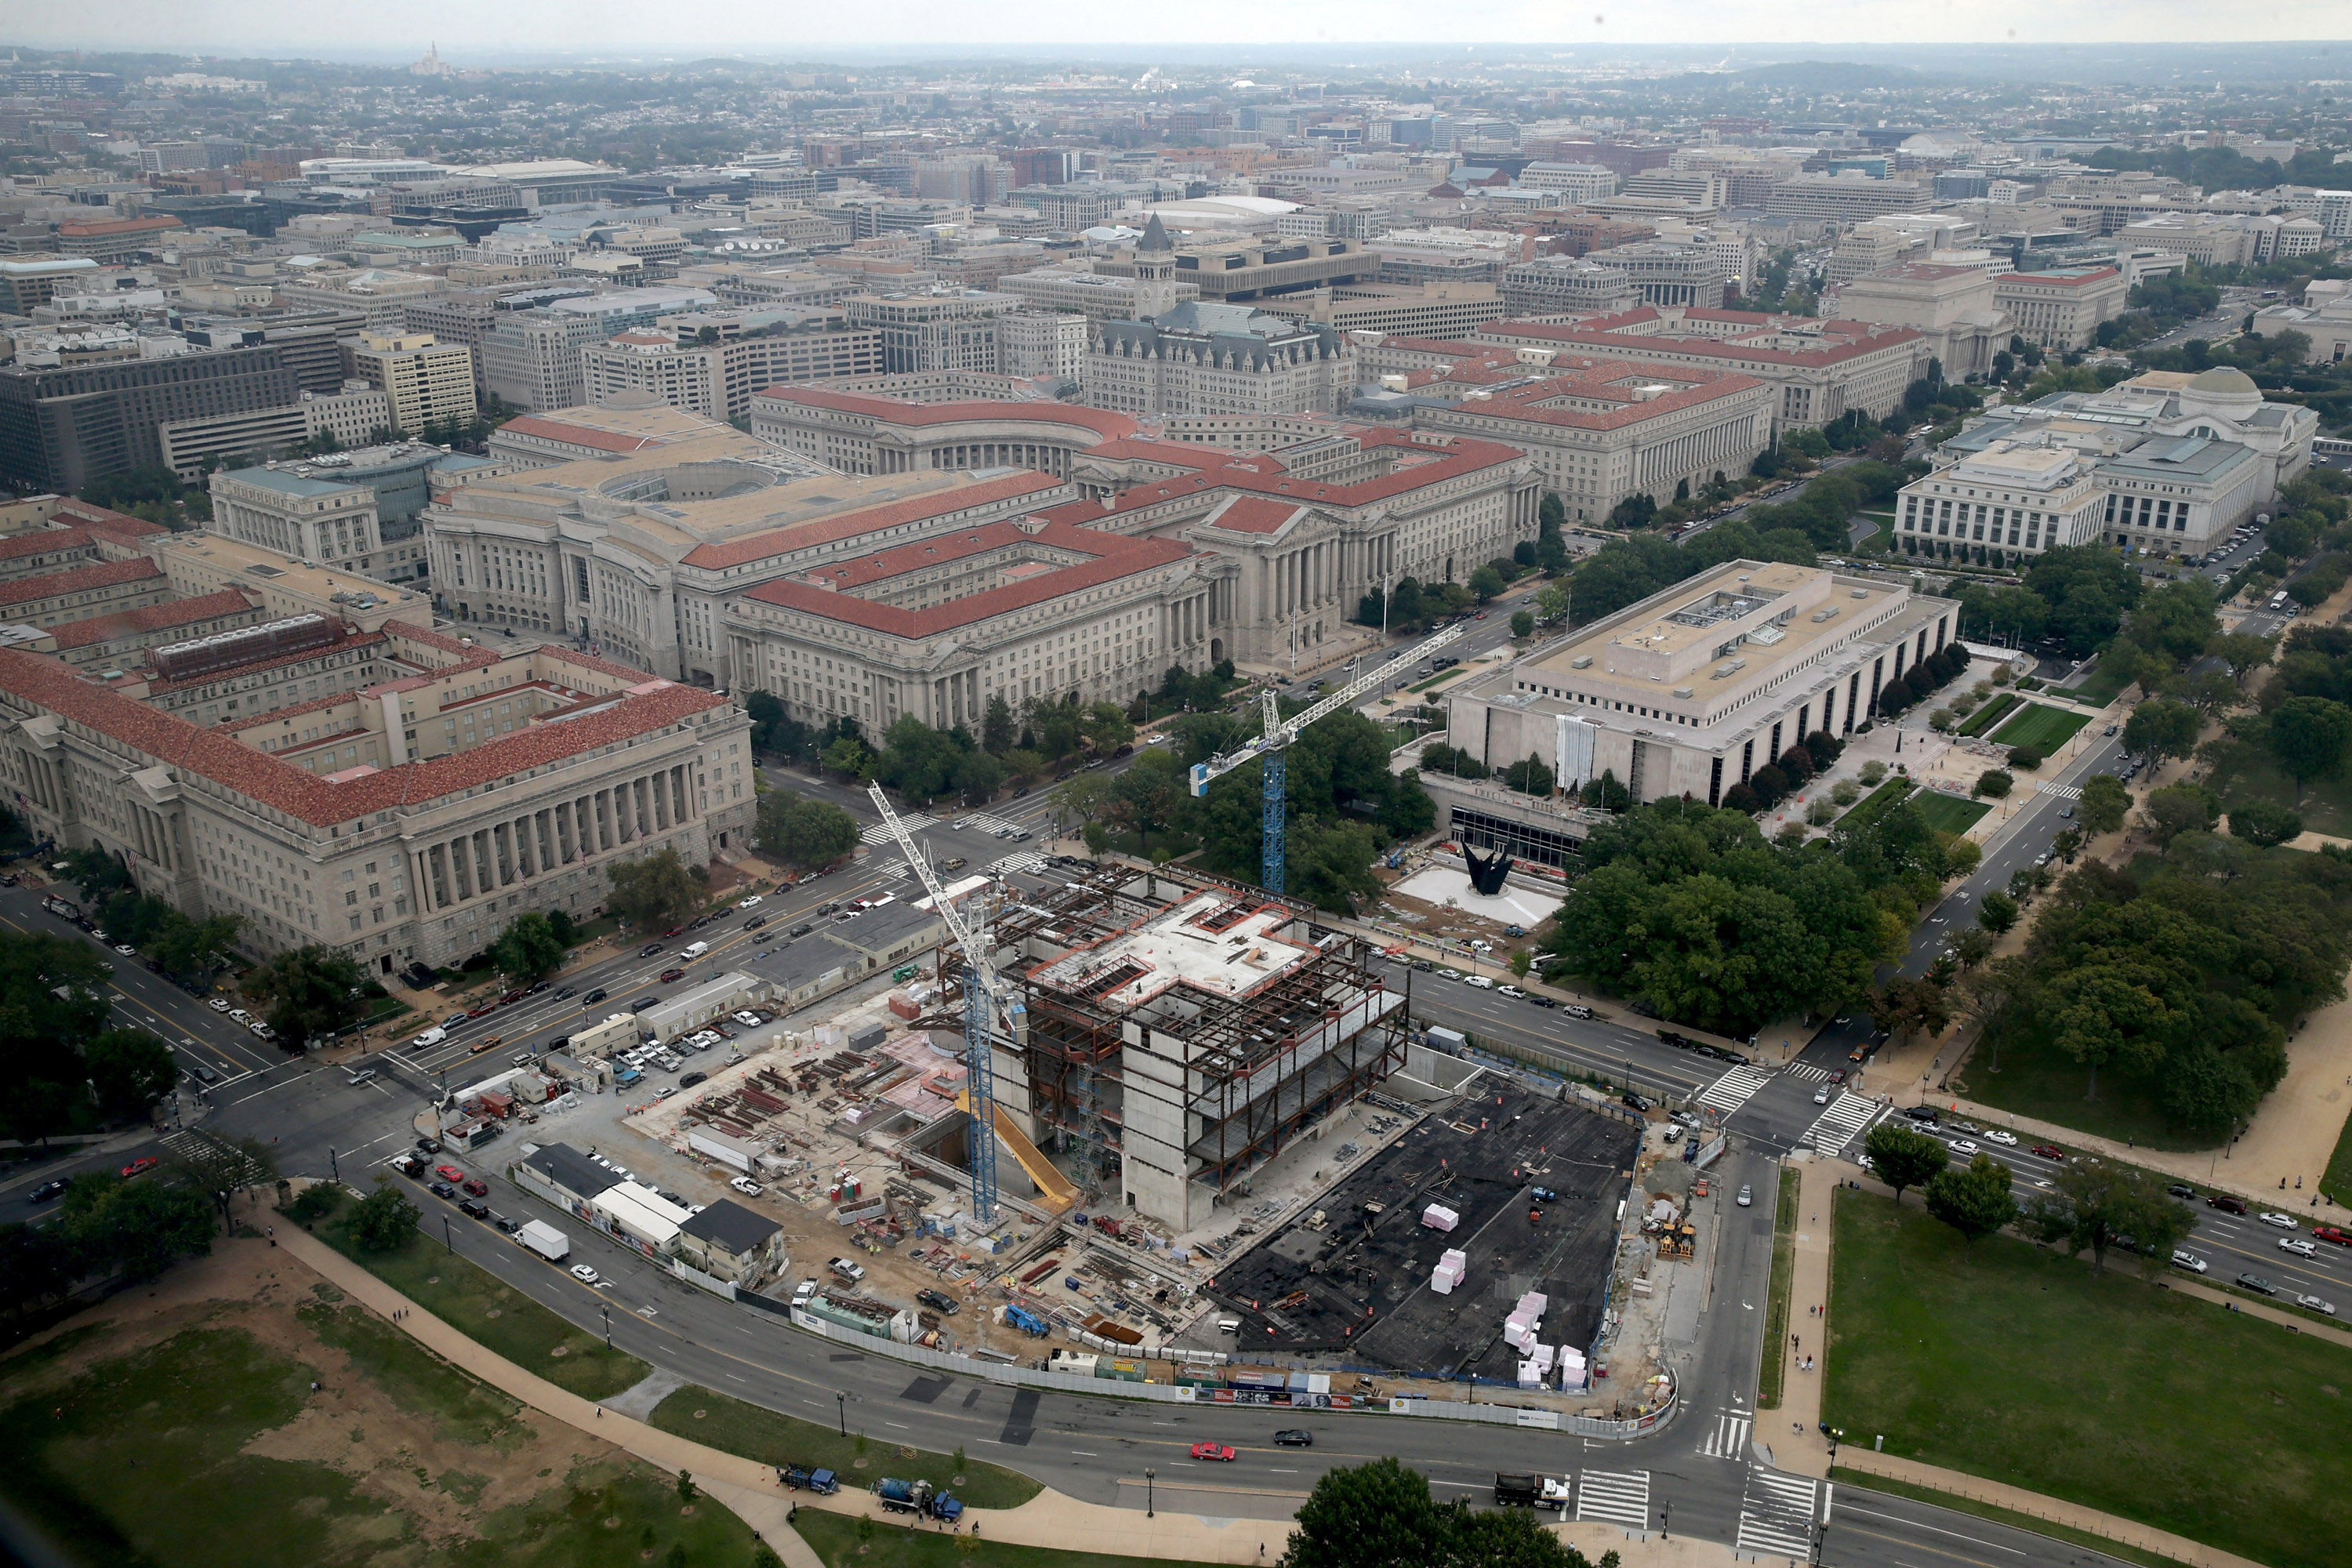 Construction continues on the National Museum of African American History and Culture on the National Mall, Oct. 1, 2014 in Washington, DC.